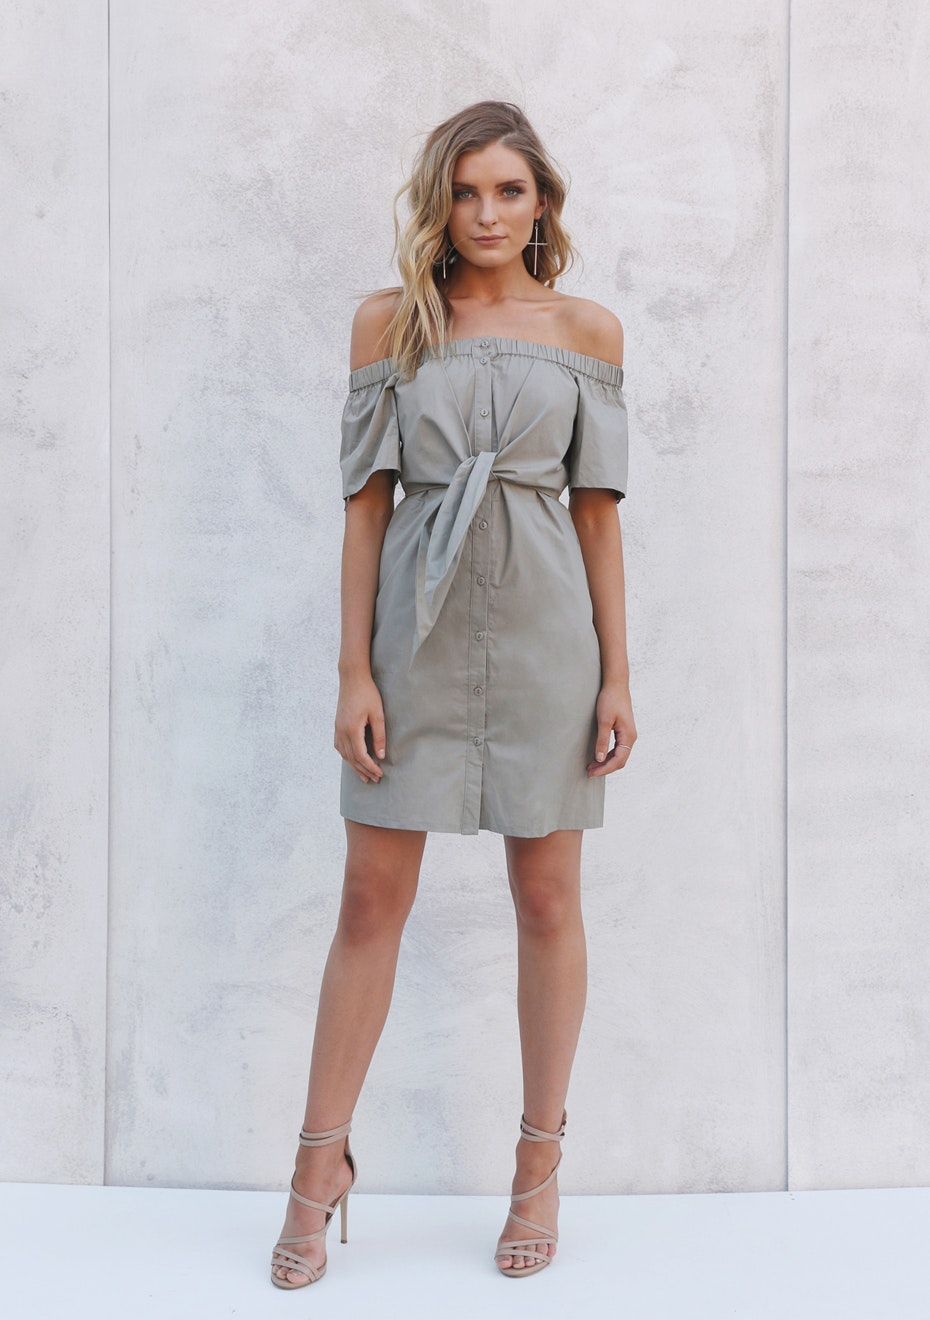 Madison - PIA SHIRT DRESS - KHAKI